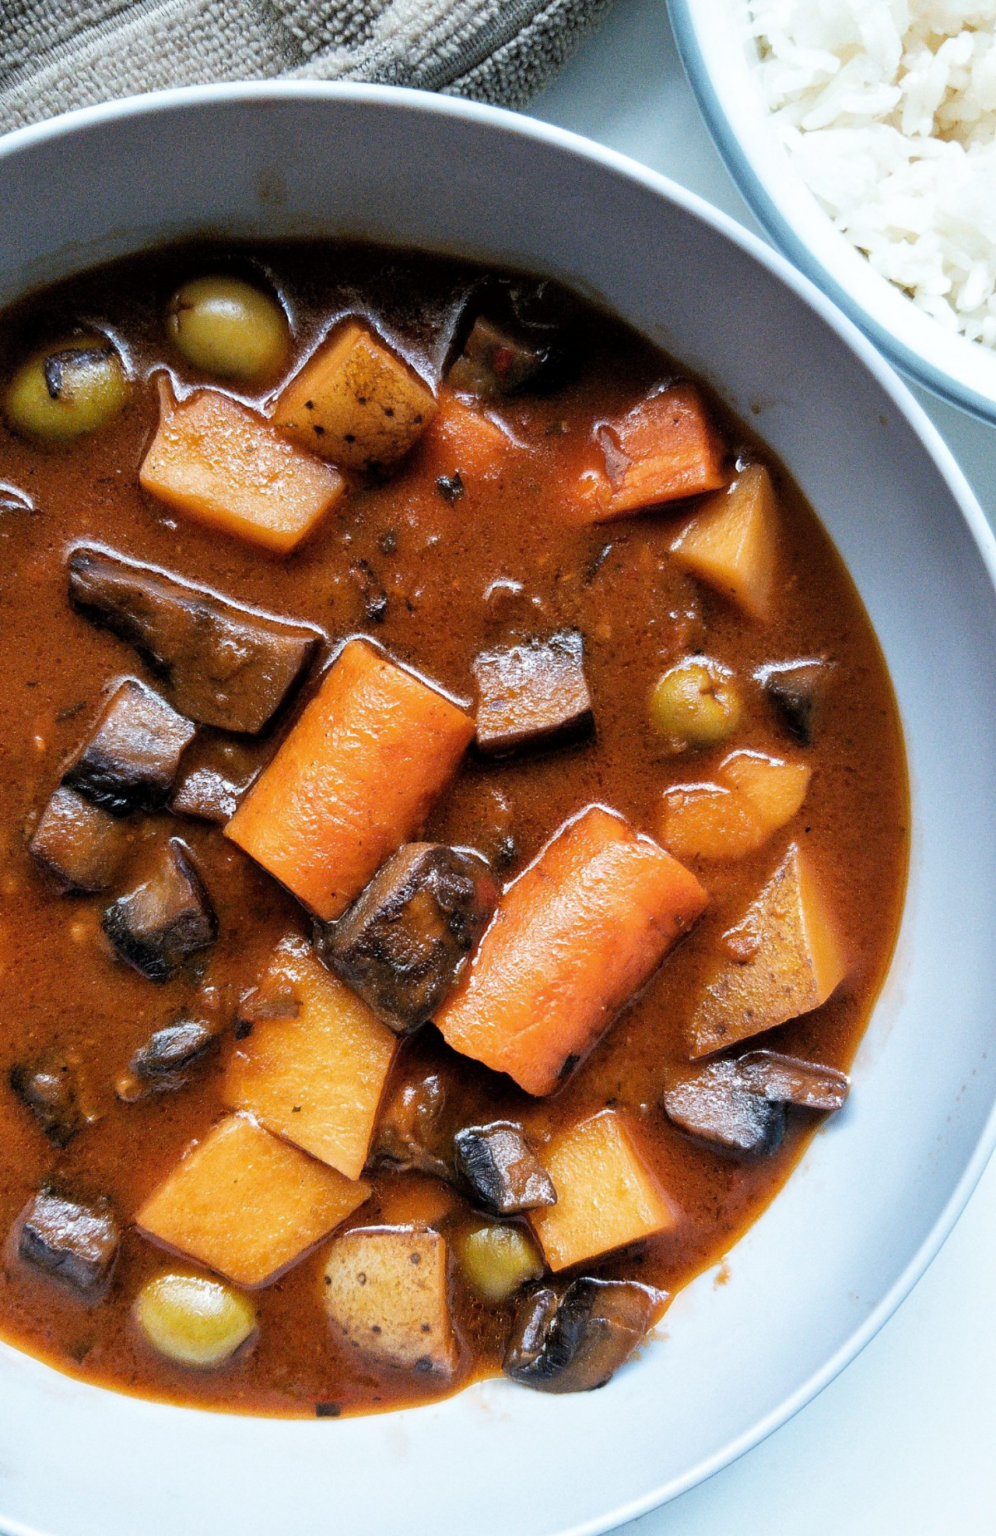 Bowl of plant-based beef stew with mushrooms, carrots, and potatoes.